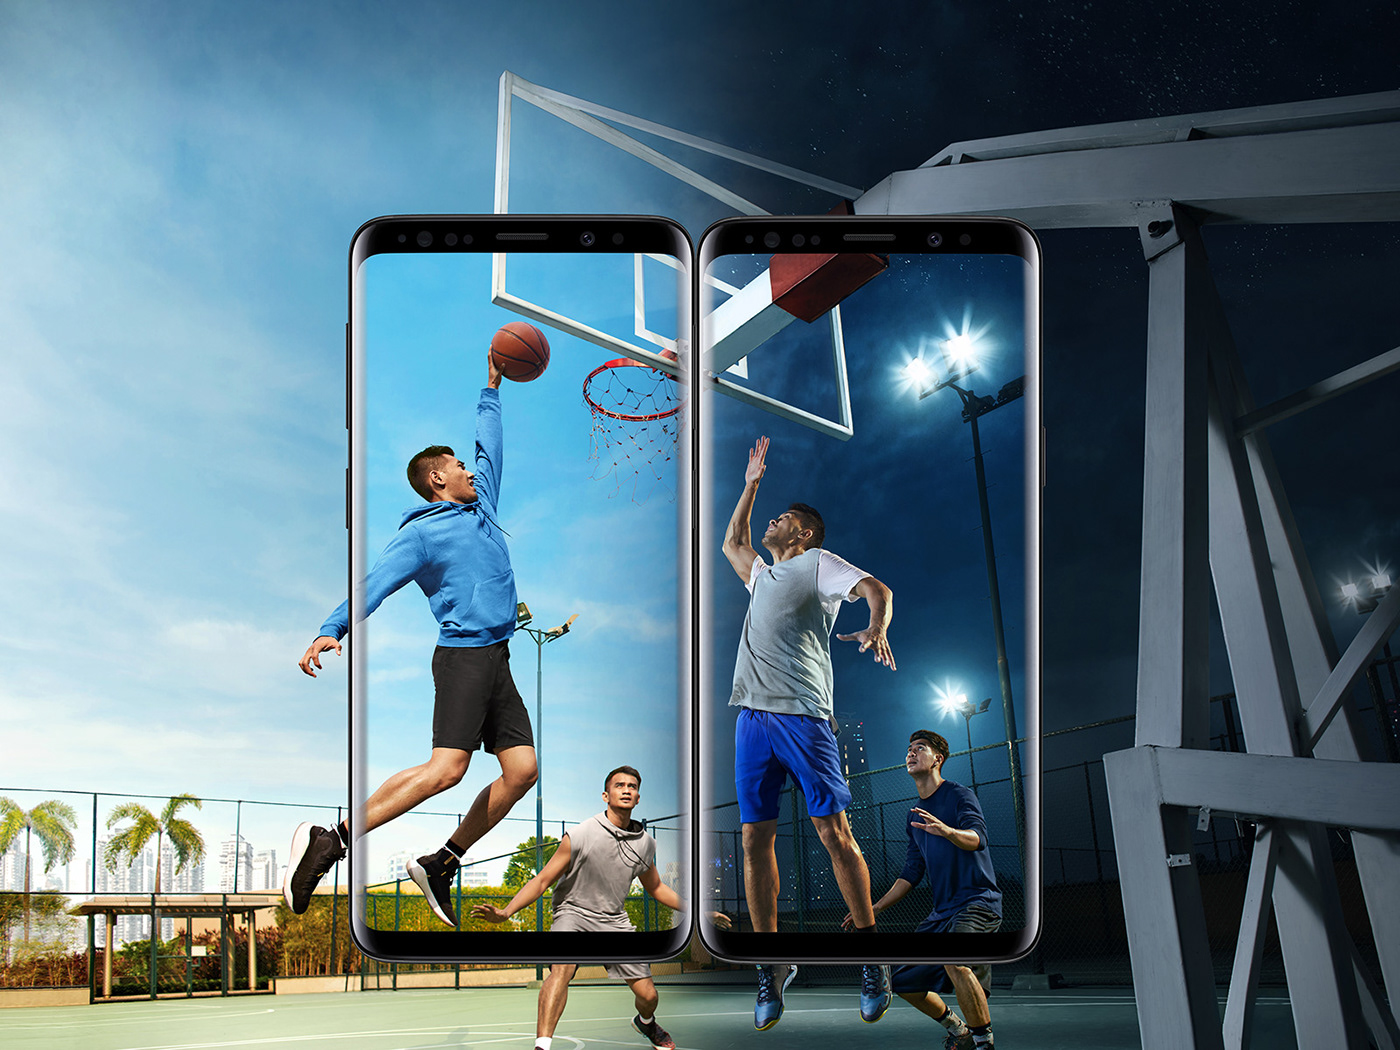 Image may contain: sky, outdoor and basketball